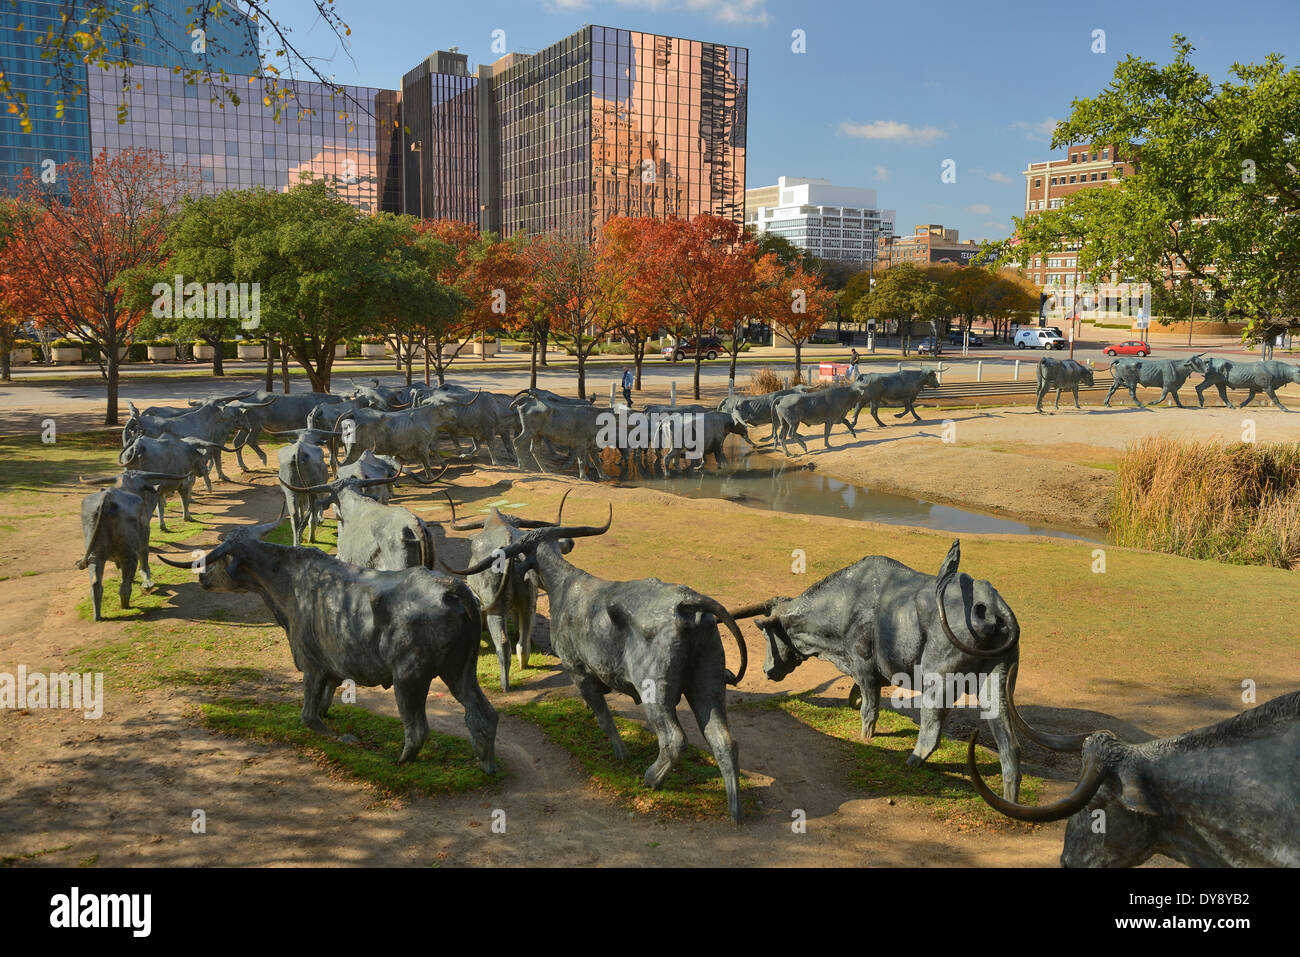 North America, Texas, USA, United States, America, Dallas, sculpture, Pioneer Place, cattle drive, downtown, cowboy, cattle, art - Stock Image